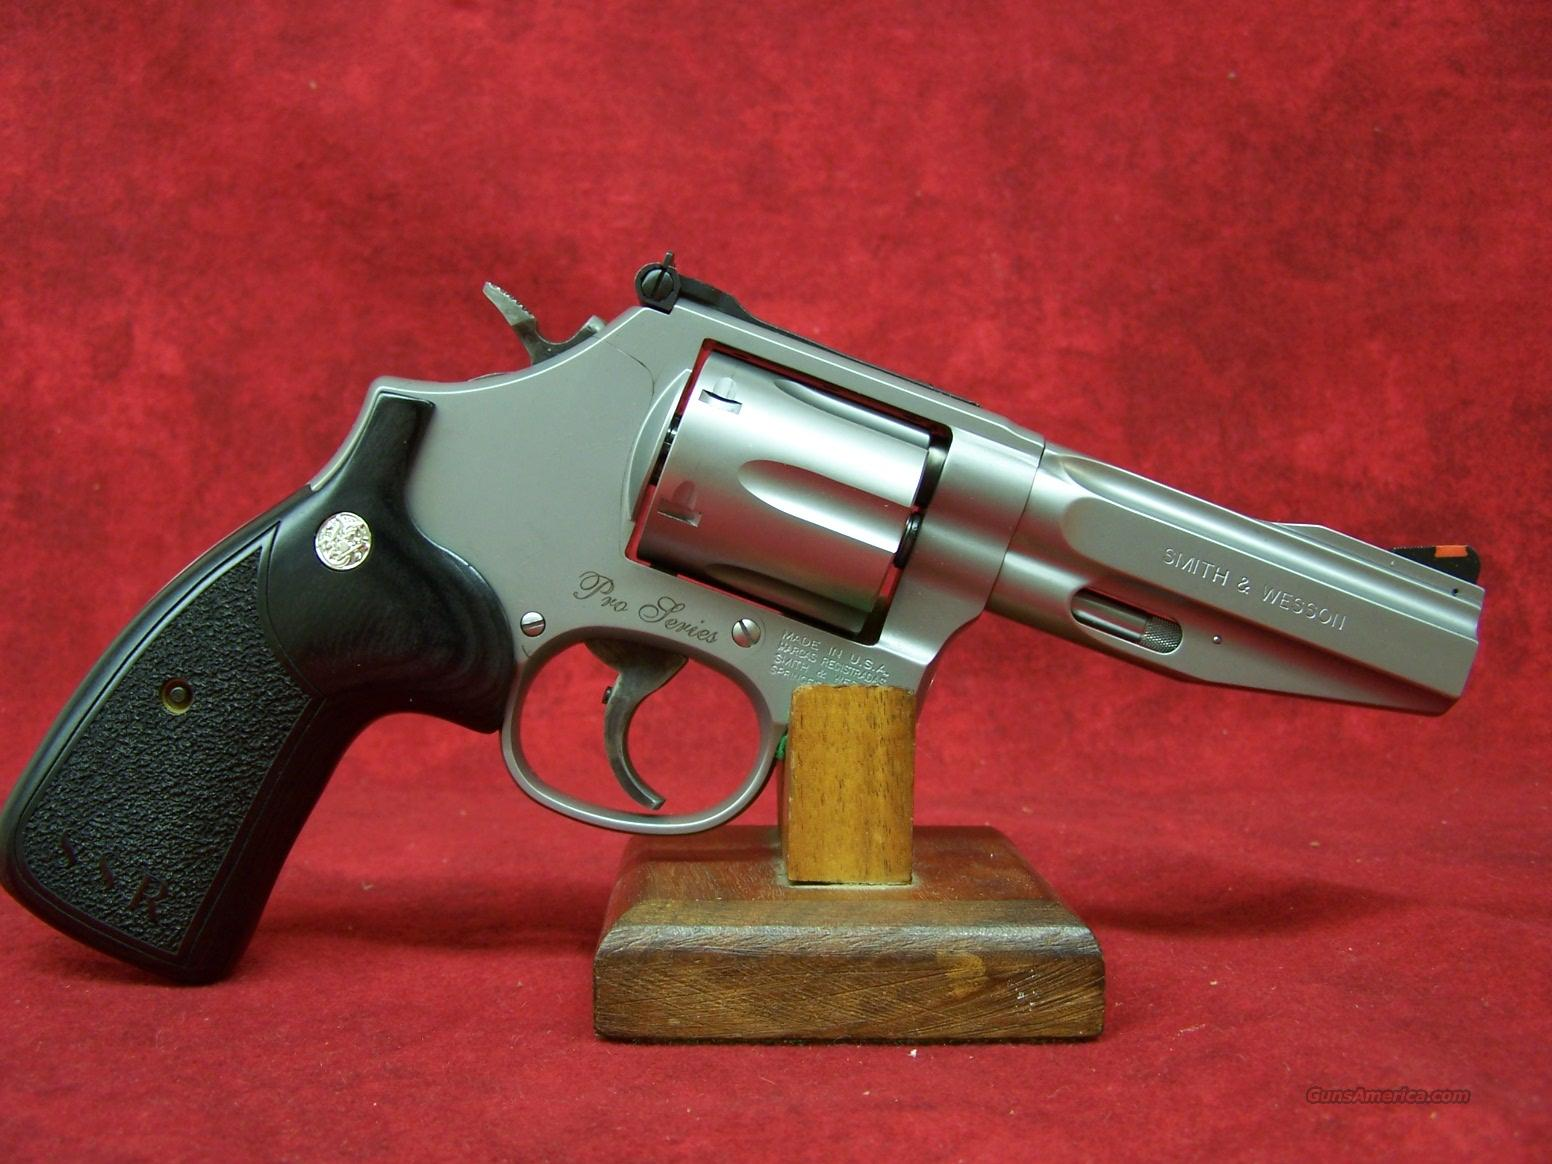 Smith & Wesson 686 SSR .357 Mag (178012)  Guns > Pistols > Smith & Wesson Revolvers > Full Frame Revolver